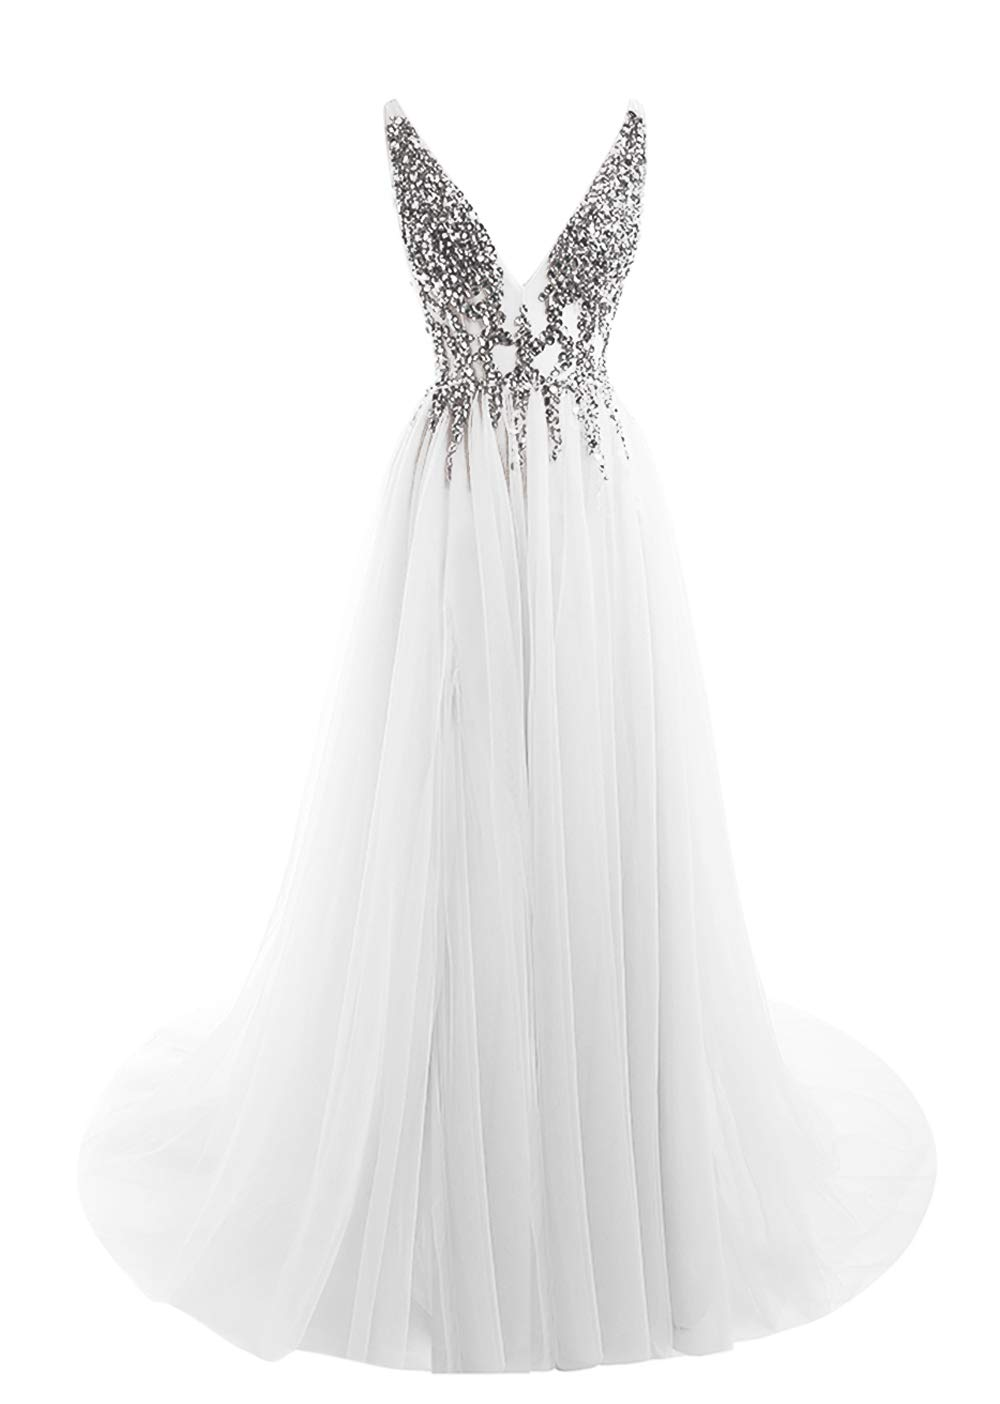 Prom Dresses Deep V Neck Sequins Tulle and Lace Sex High Split Long Evening Dresses HFY170503-White-US10 by HONGFUYU